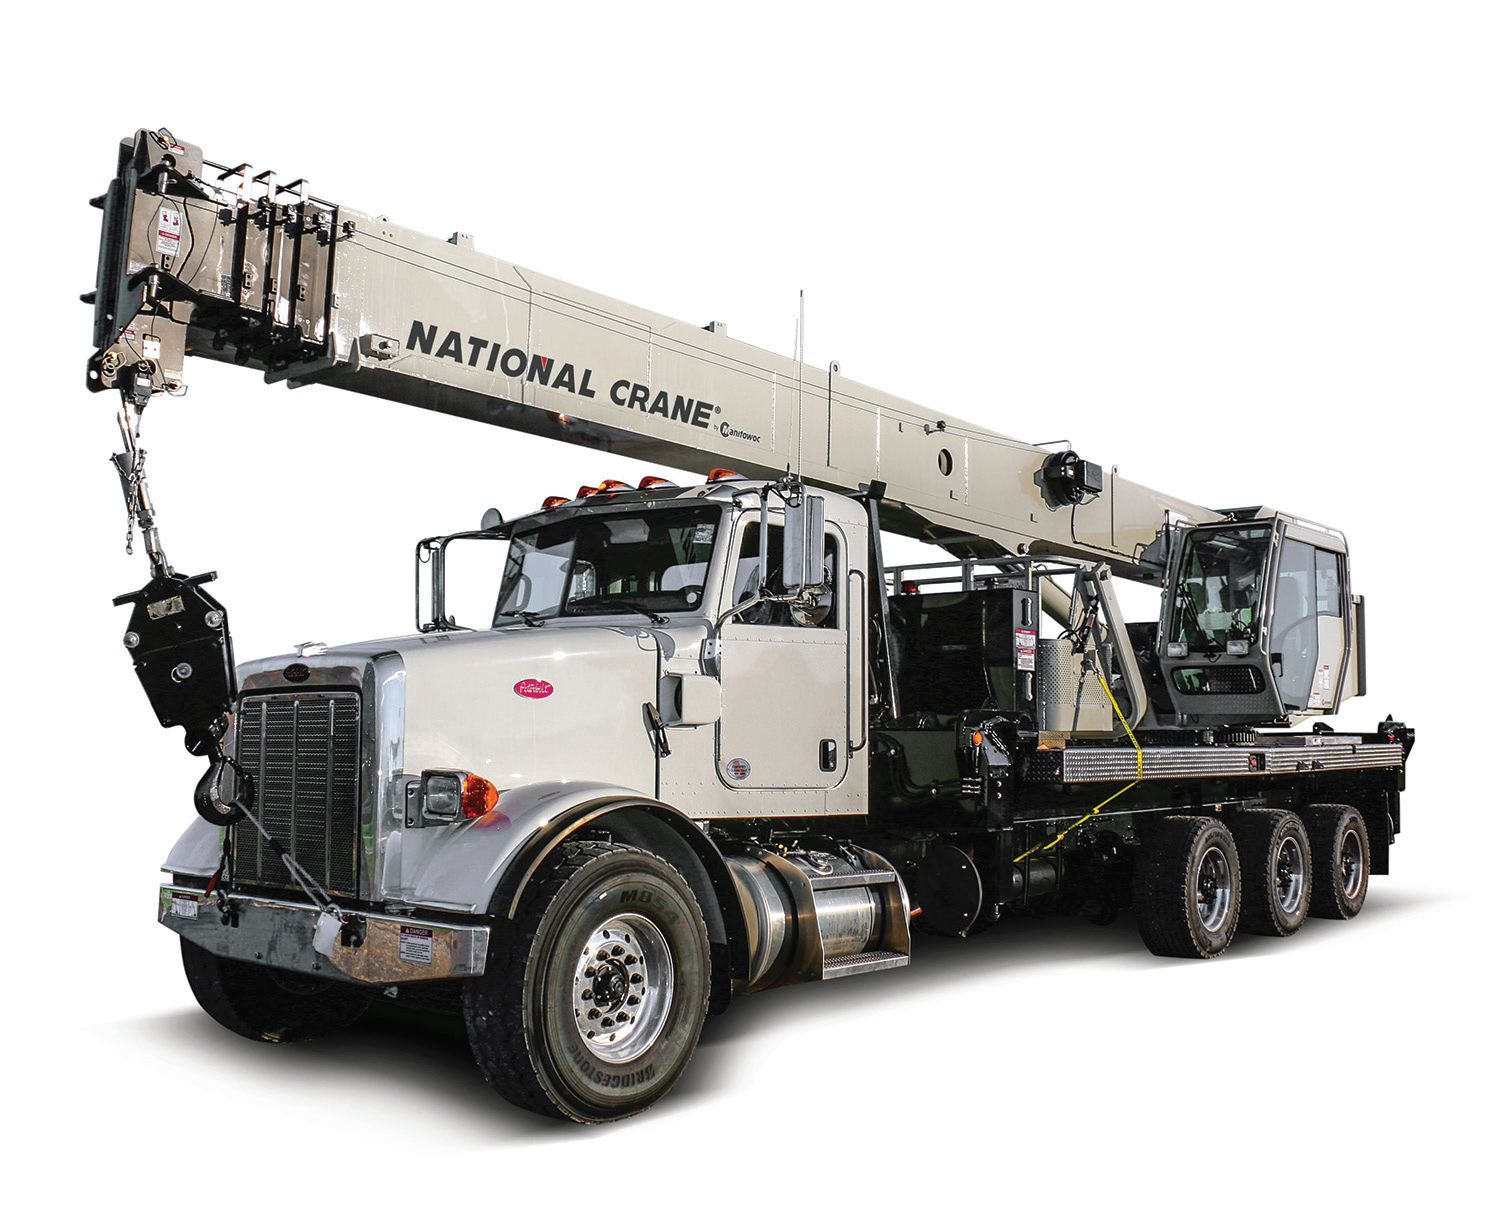 Boom Truck Series Offers Two-in-One Versatility